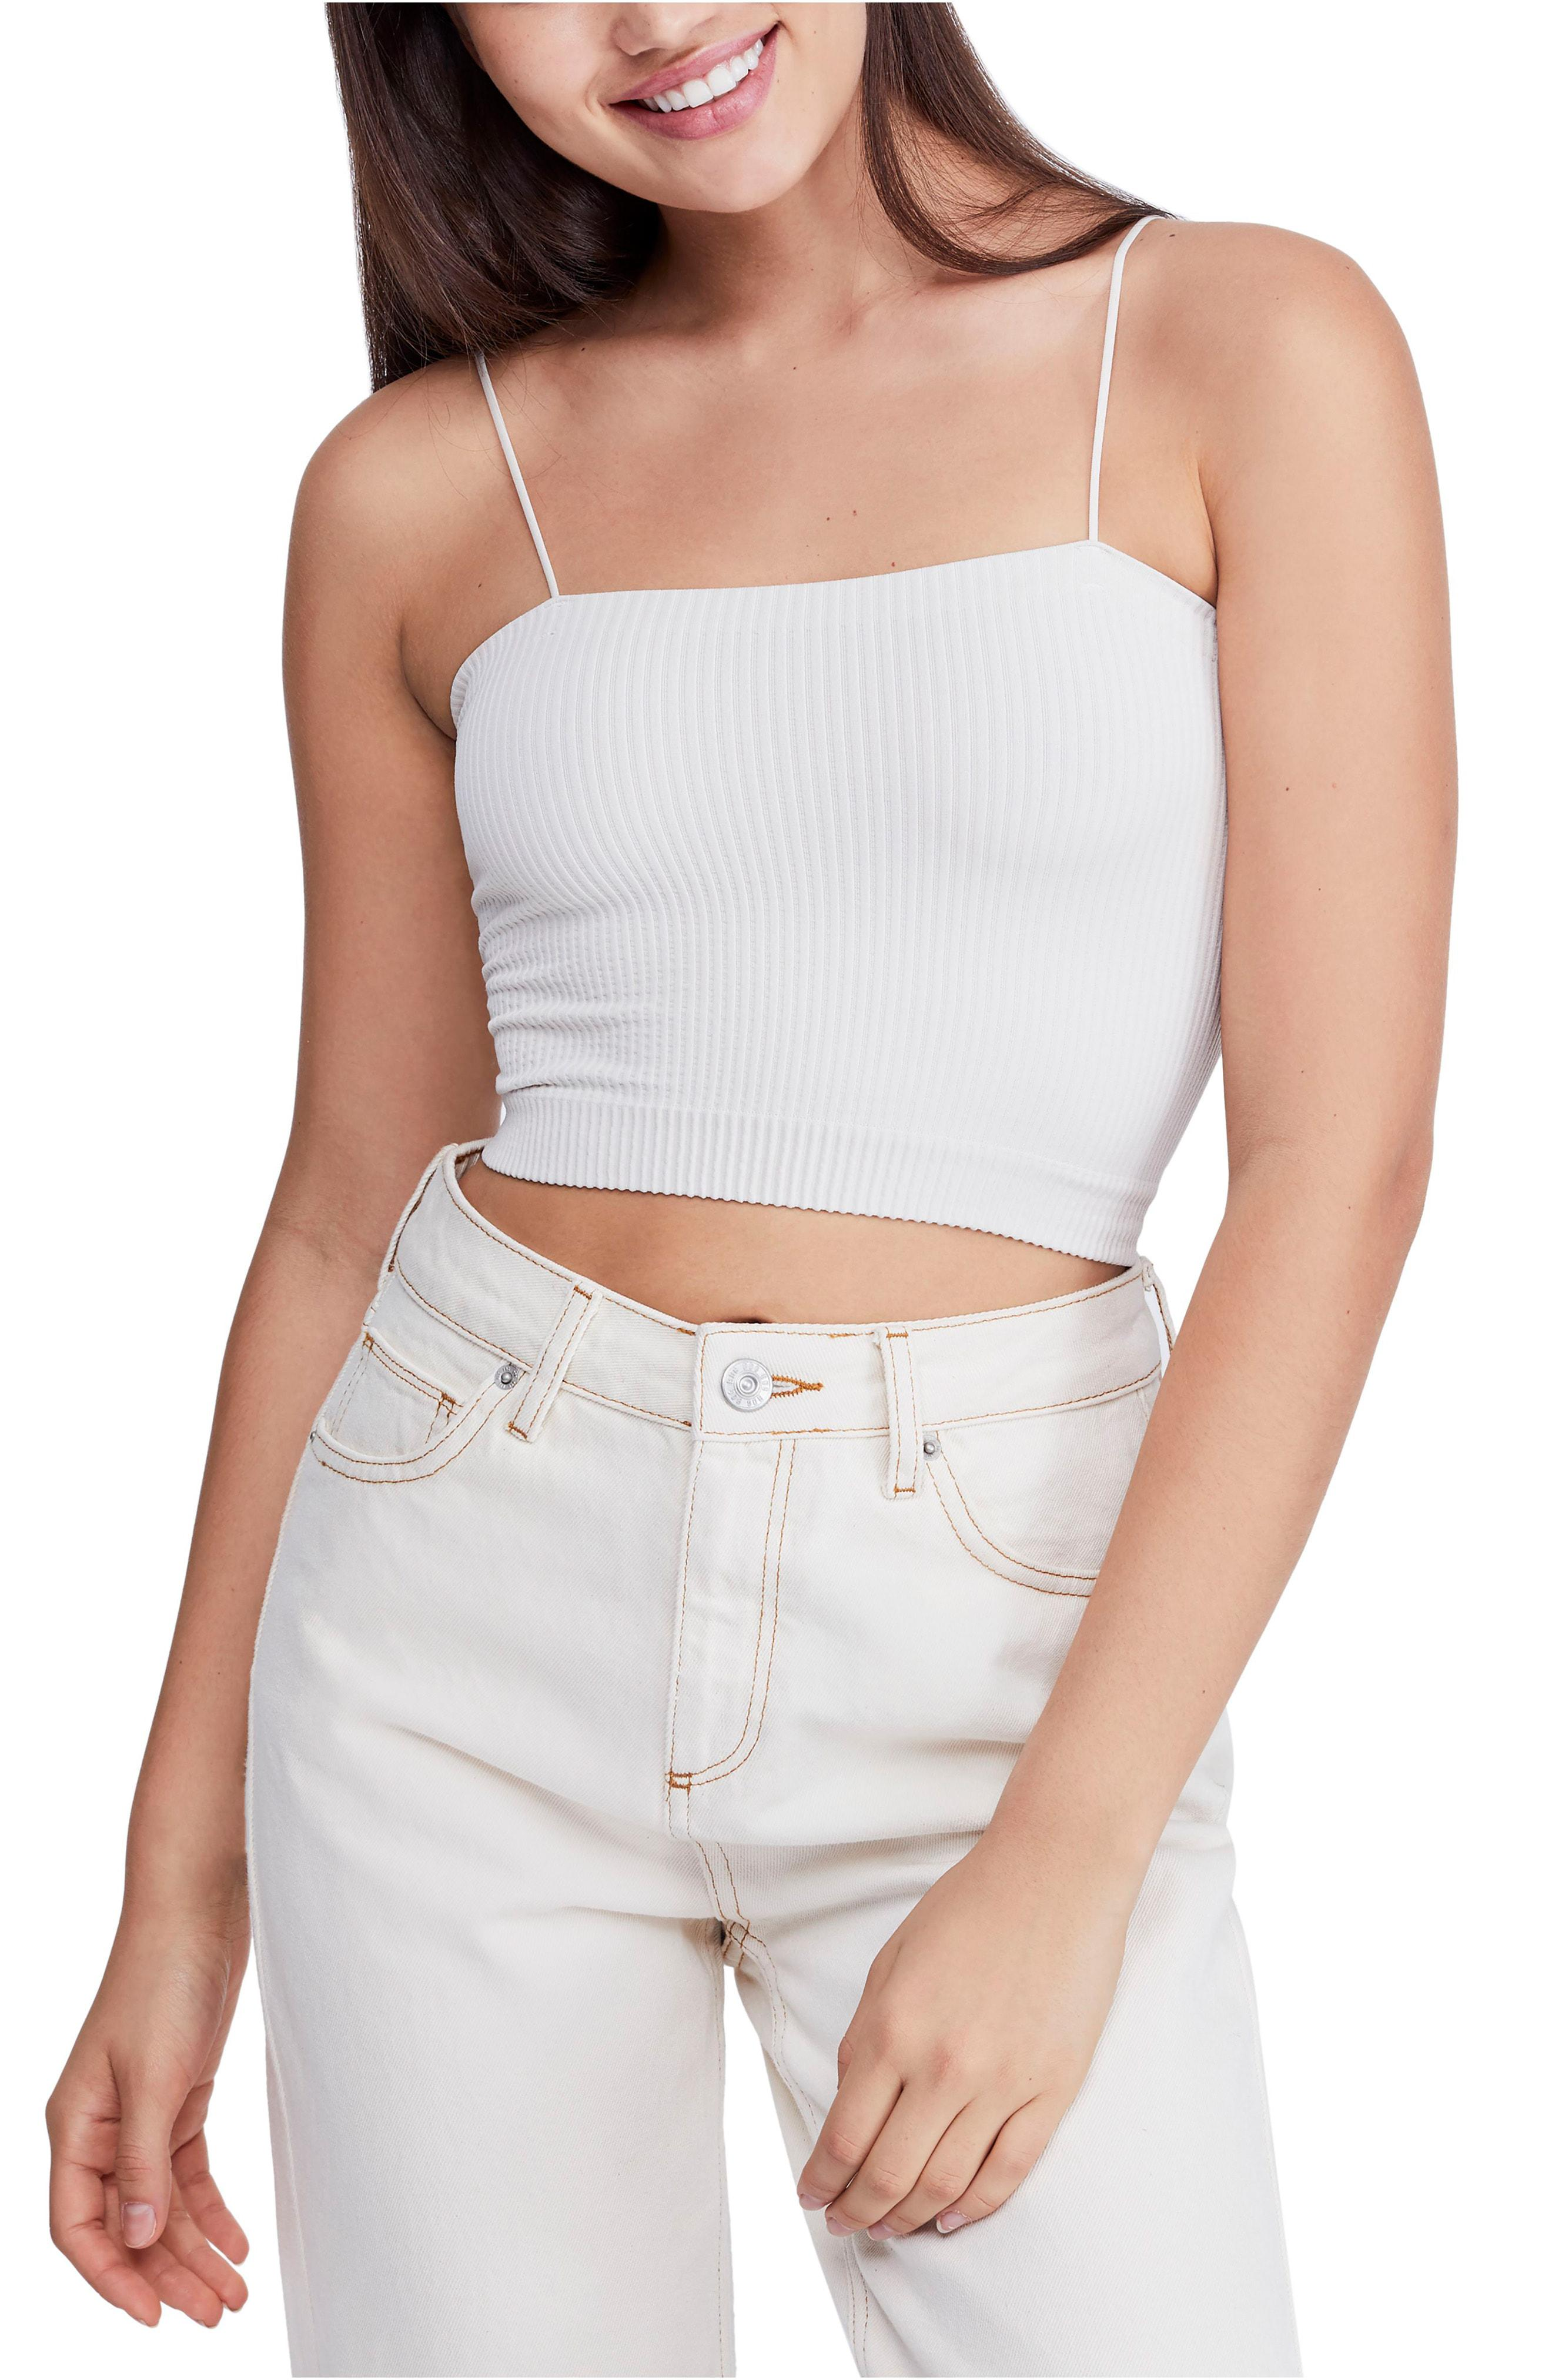 ffaad8666e BDG Urban Outfitters Bungee Strap Tube Top in Blue - Lyst